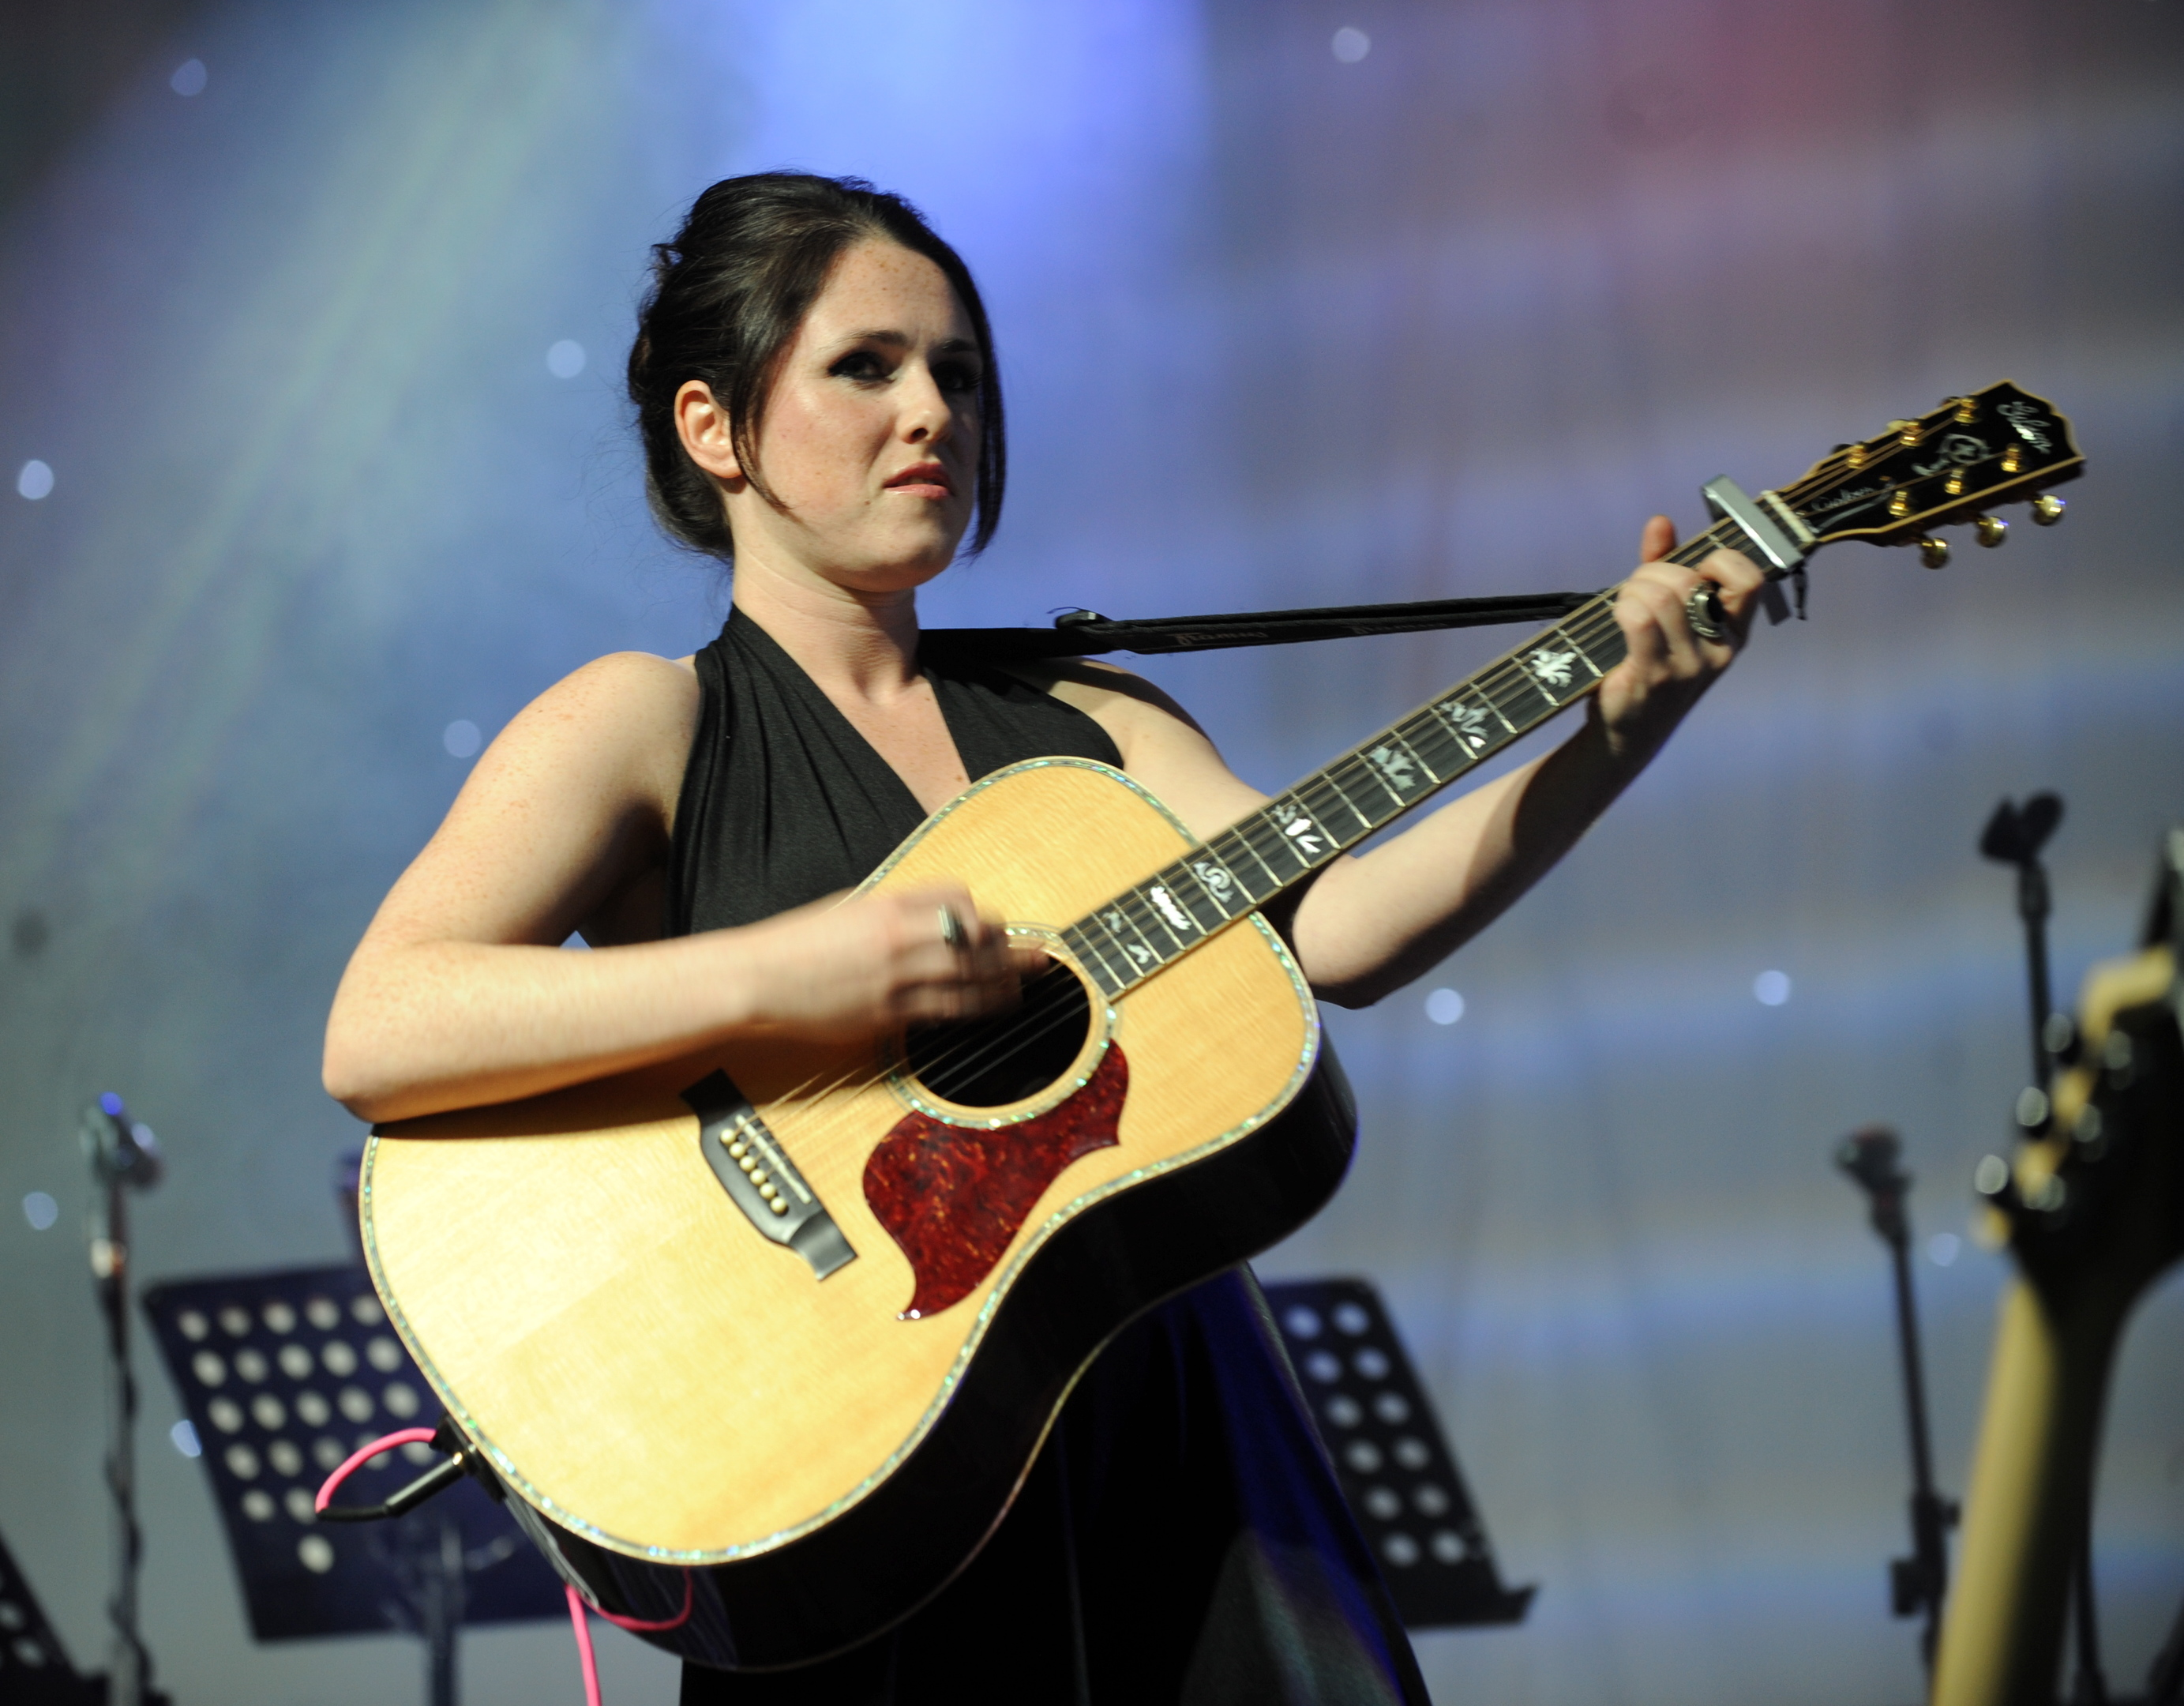 """North-east singer and songwriter Sandi Thom says her outburst has """"opened up a debate"""" on the UK music industry."""